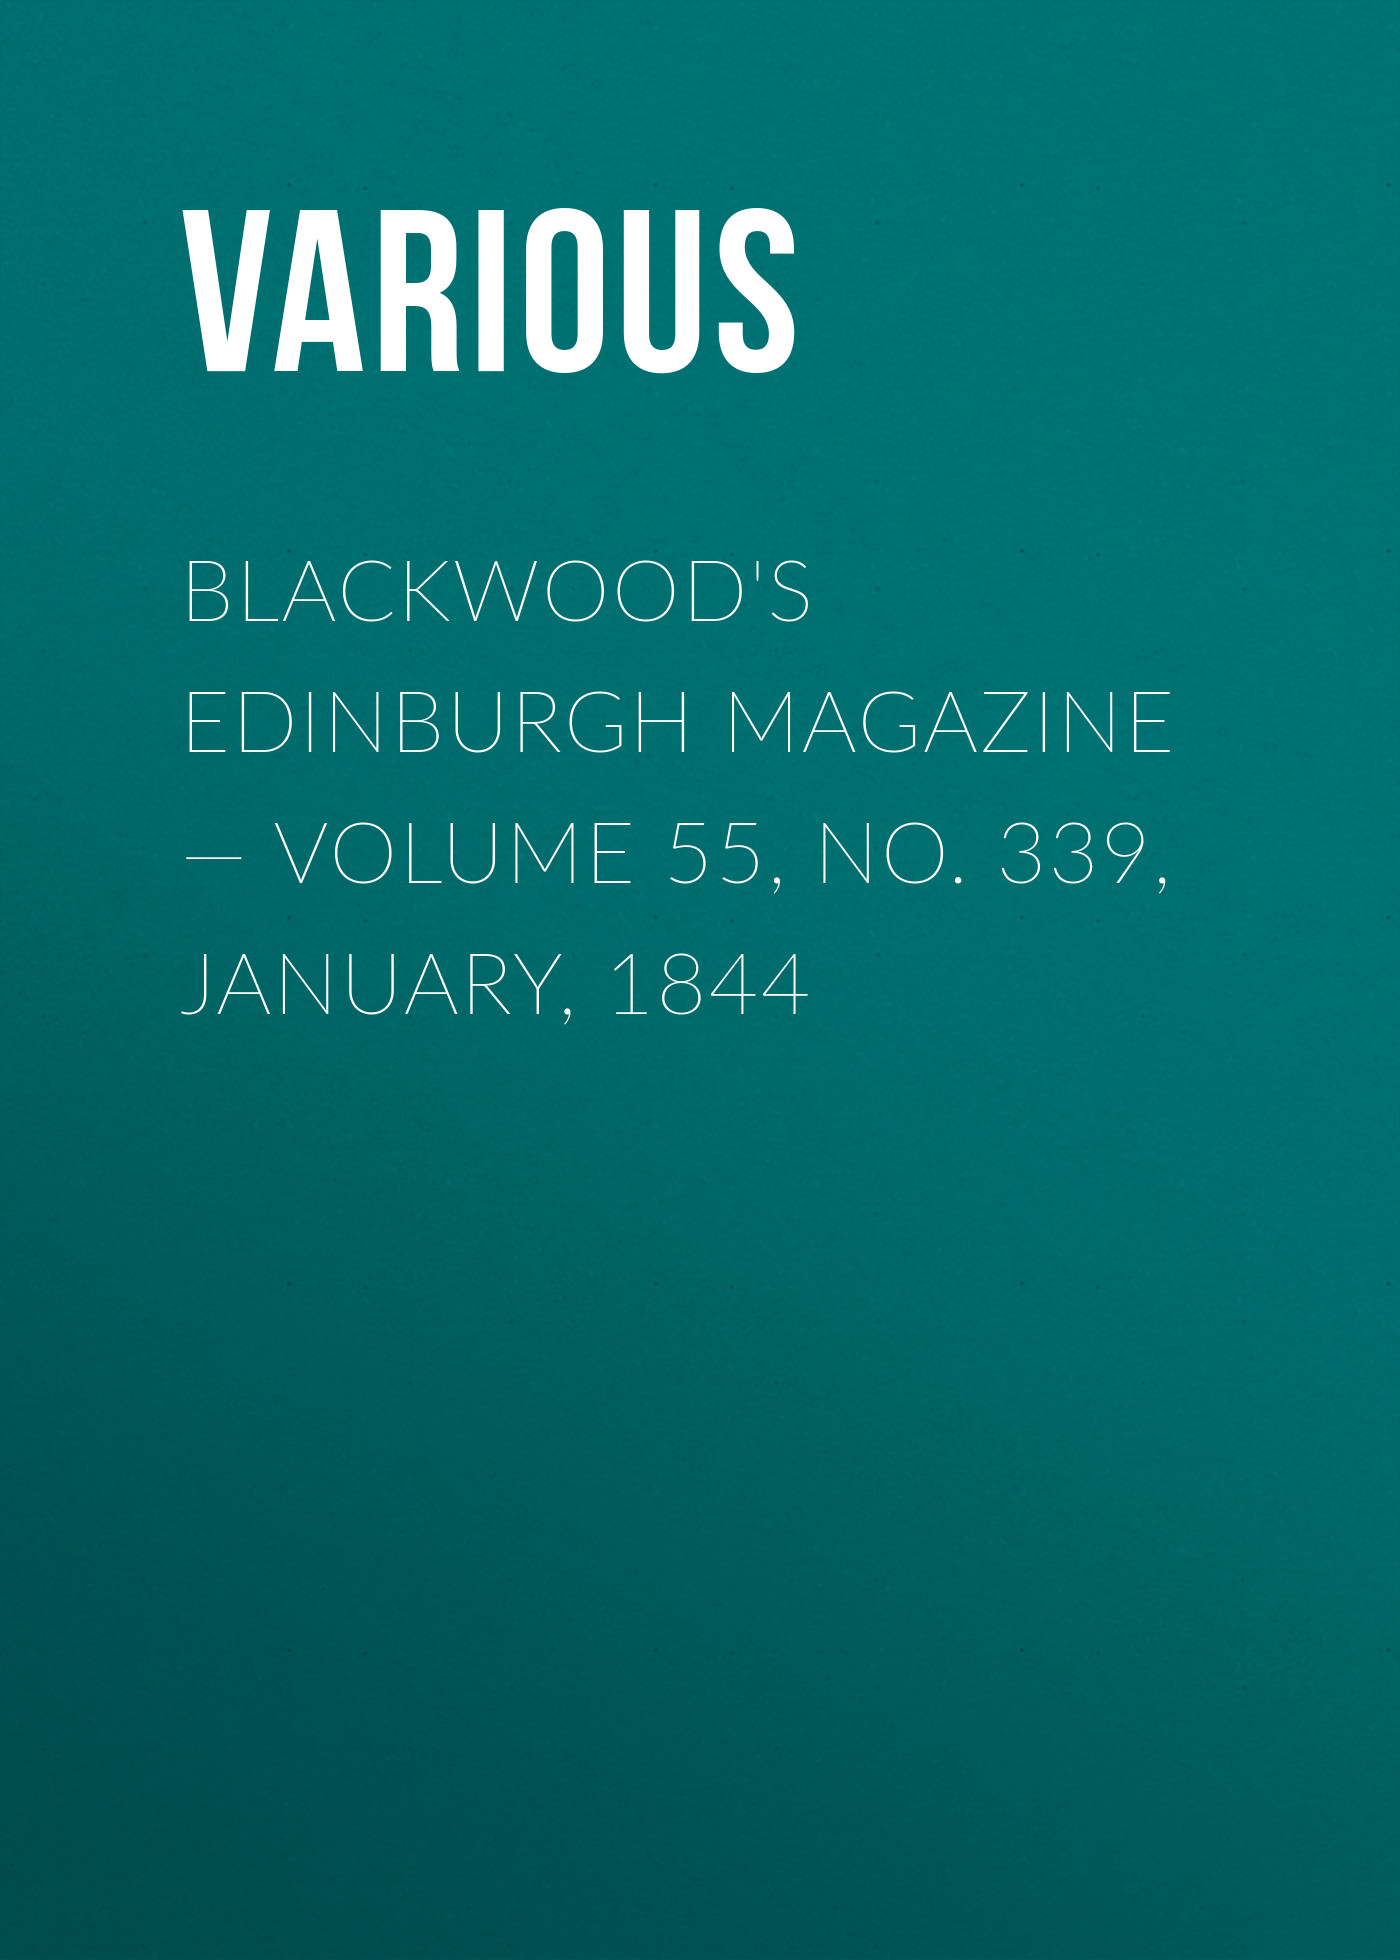 Various Blackwood's Edinburgh Magazine — Volume 55, No. 339, January, 1844 various blackwood s edinburgh magazine volume 67 no 411 january 1850